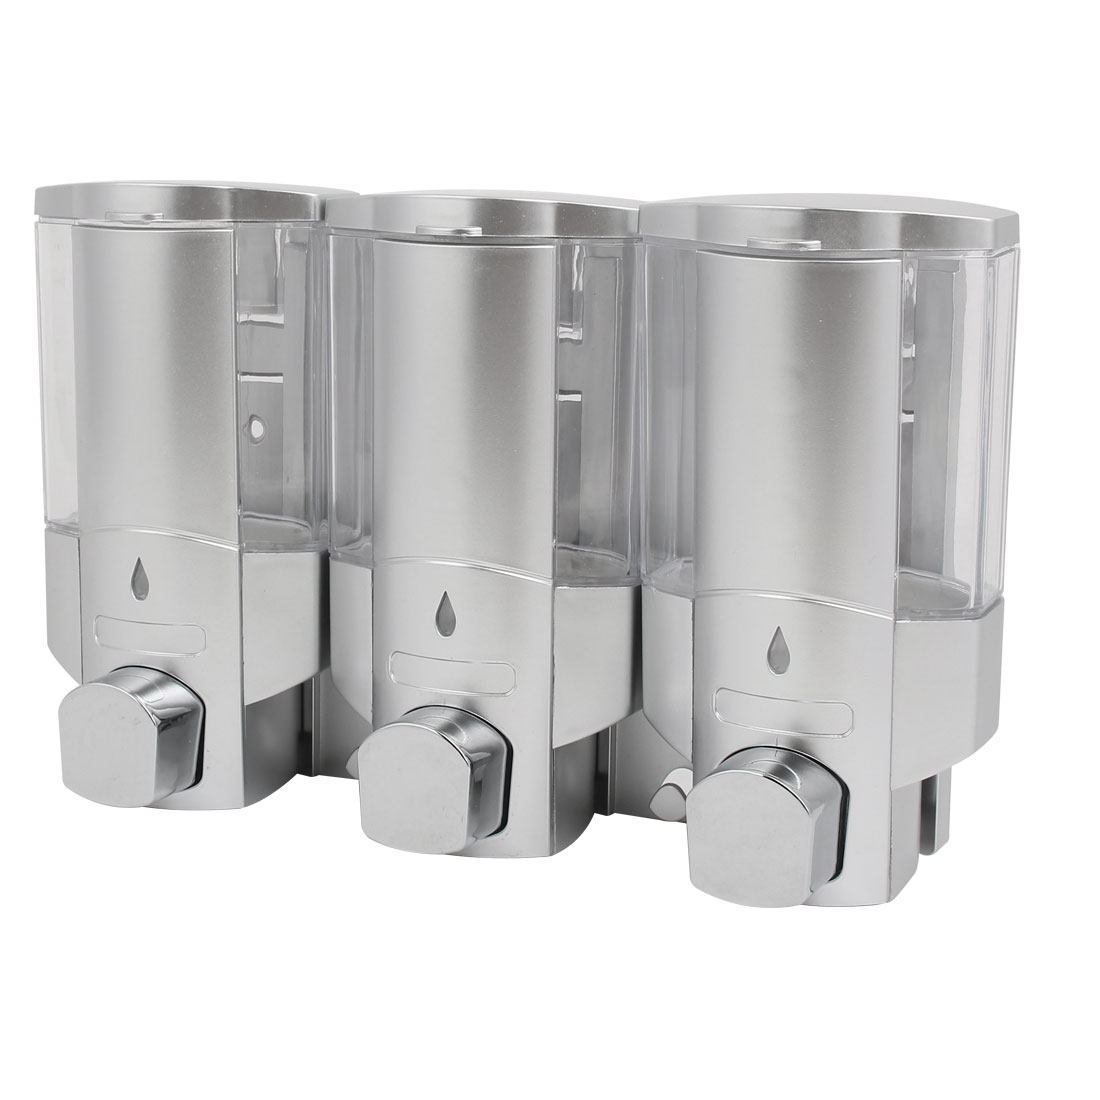 Uxcell ABS Plastic Wall Mount 3 Chember Soap Dispenser Silver Tone, 300ml Capacity Each